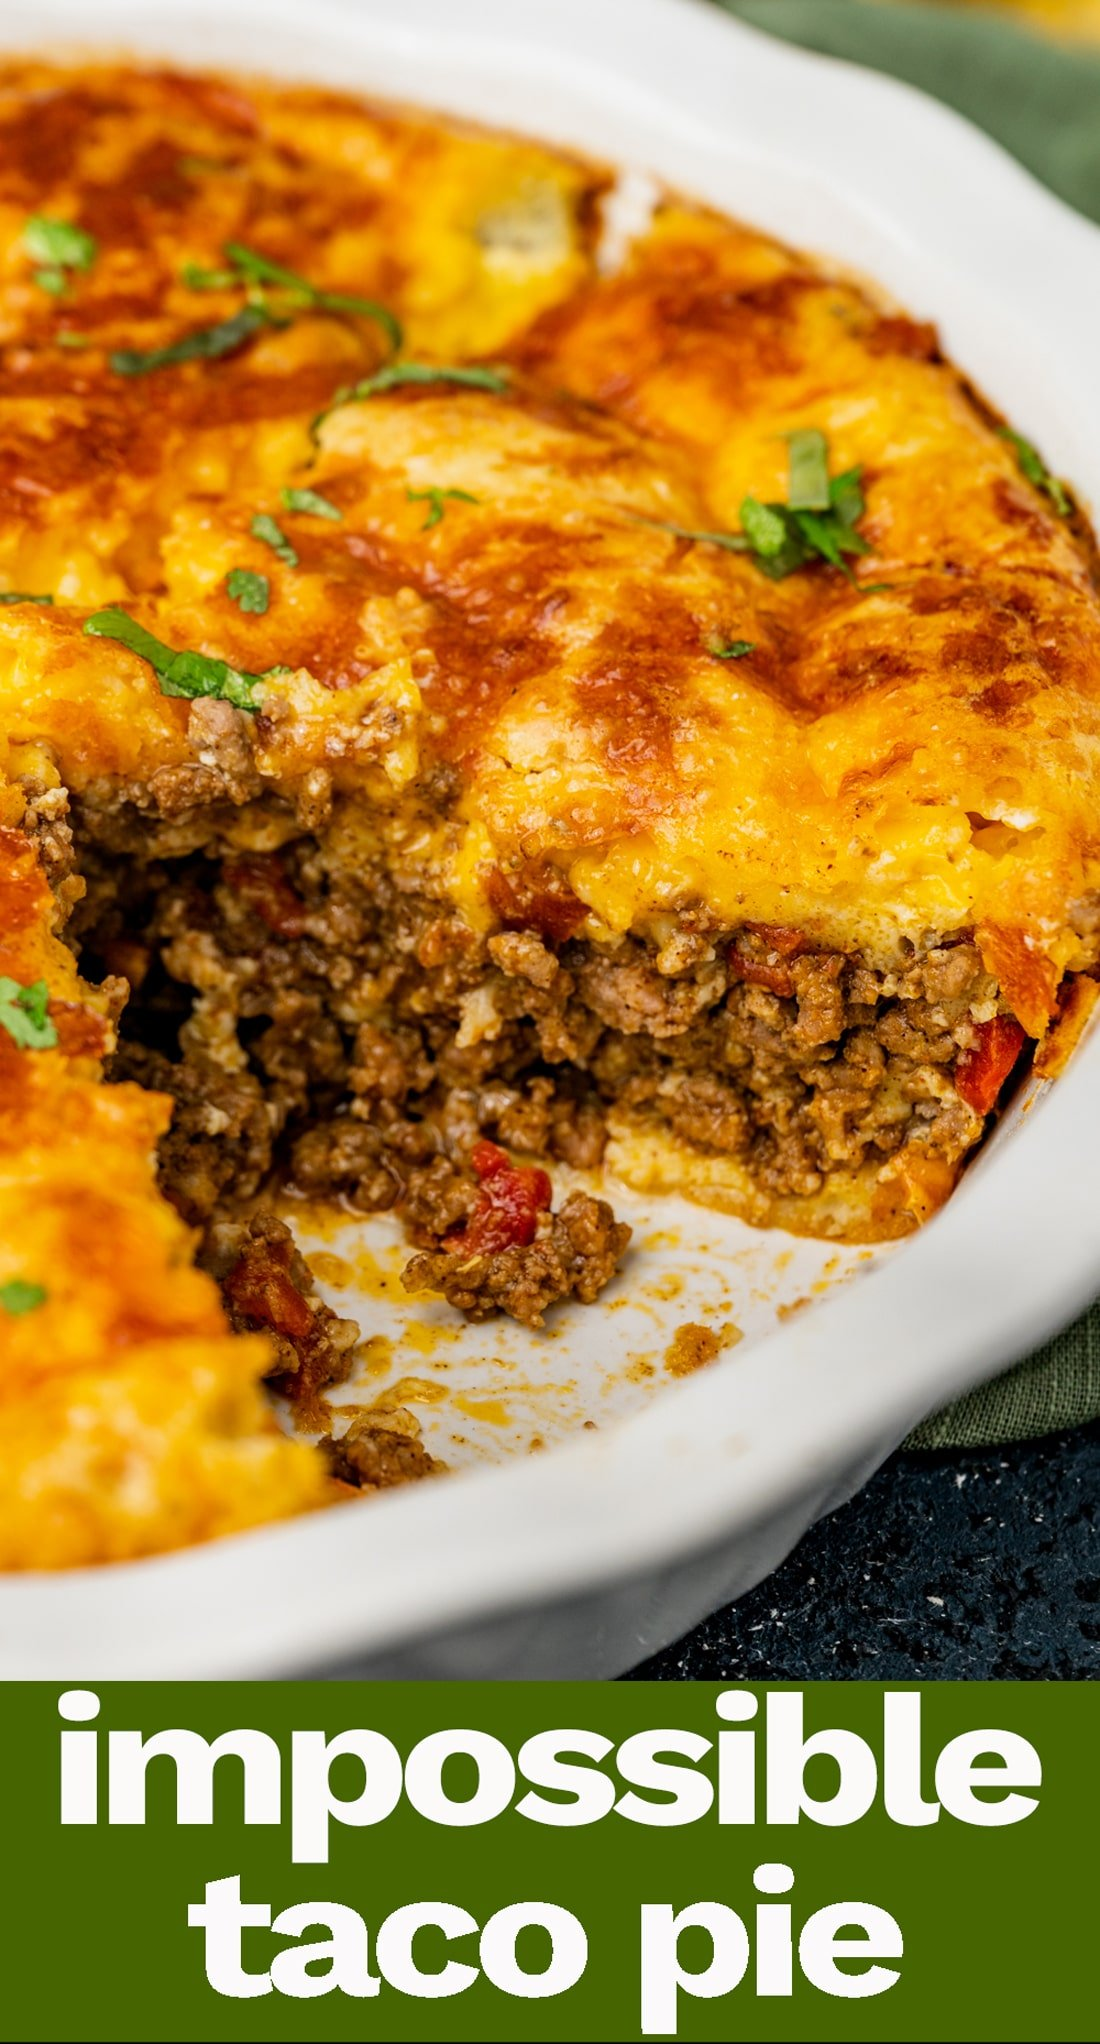 The ultimate in comfort food, this Impossible Taco Pie is layered with ground beef, Rotel, cheddar cheese and a Bisquick topping. It's an easy family dinner recipe. via @tastesoflizzyt